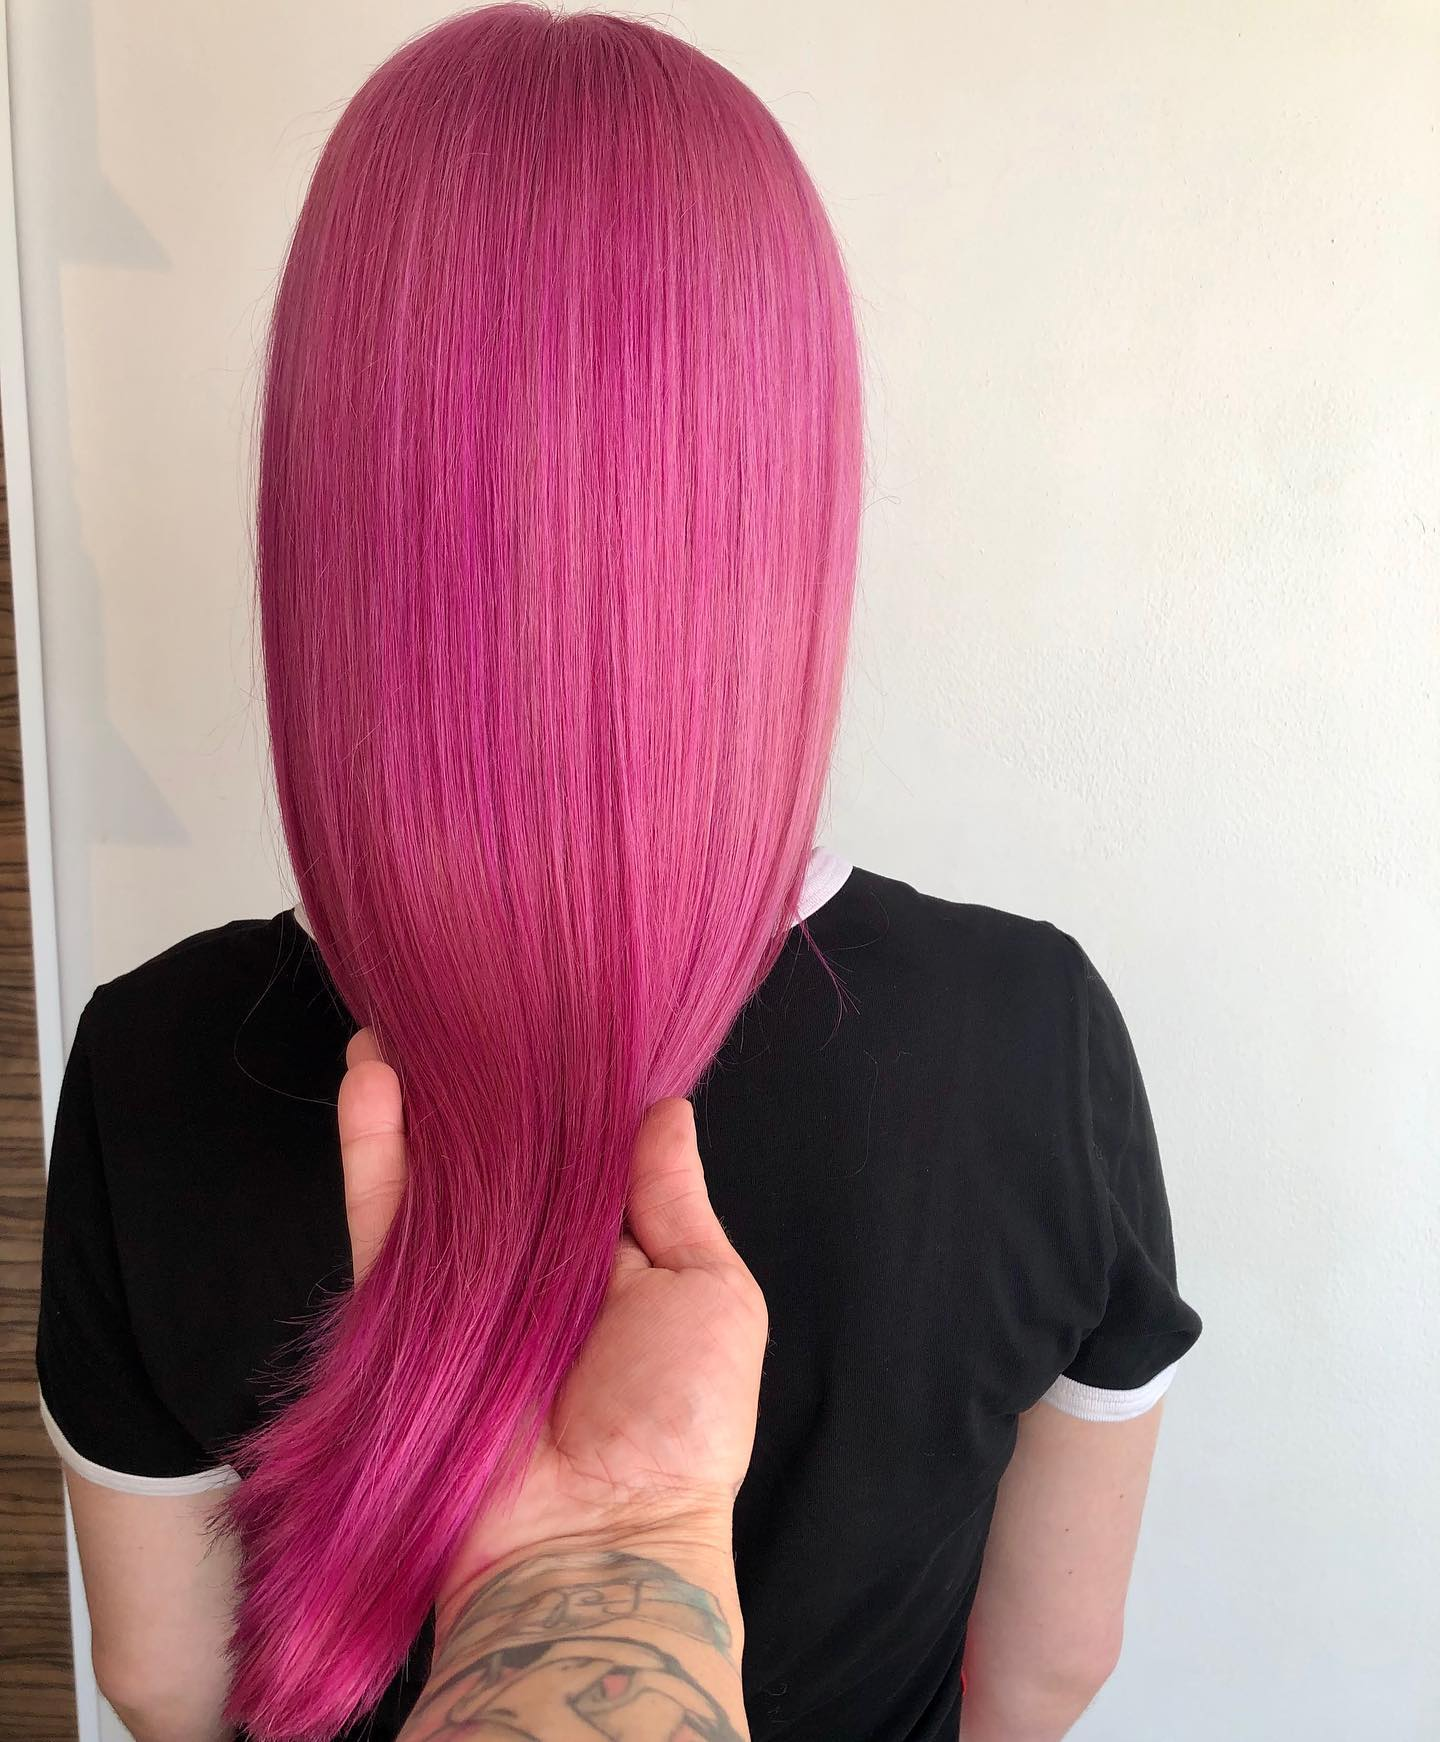 Bright fuchsia pink hair colour displayed on a salon client